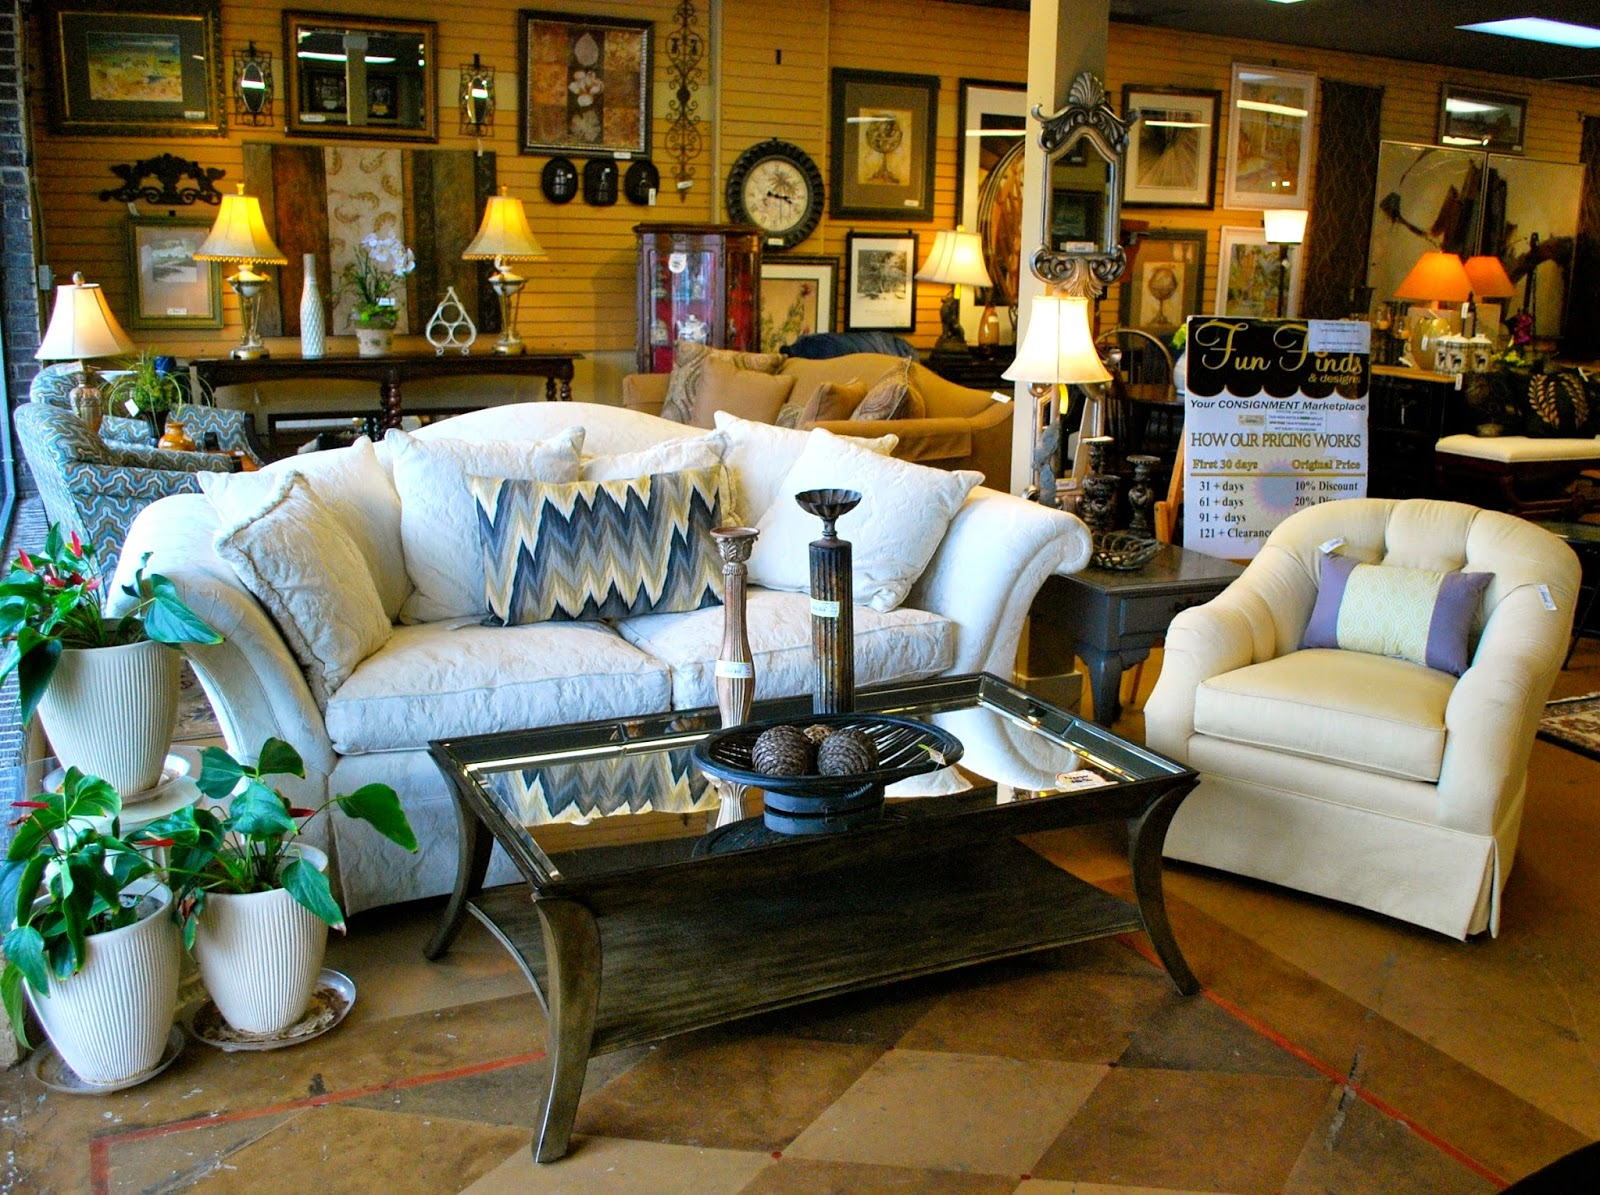 Luxury Home Furnishings For Less At Fun Finds And Designs Atlanta Consignment Stores